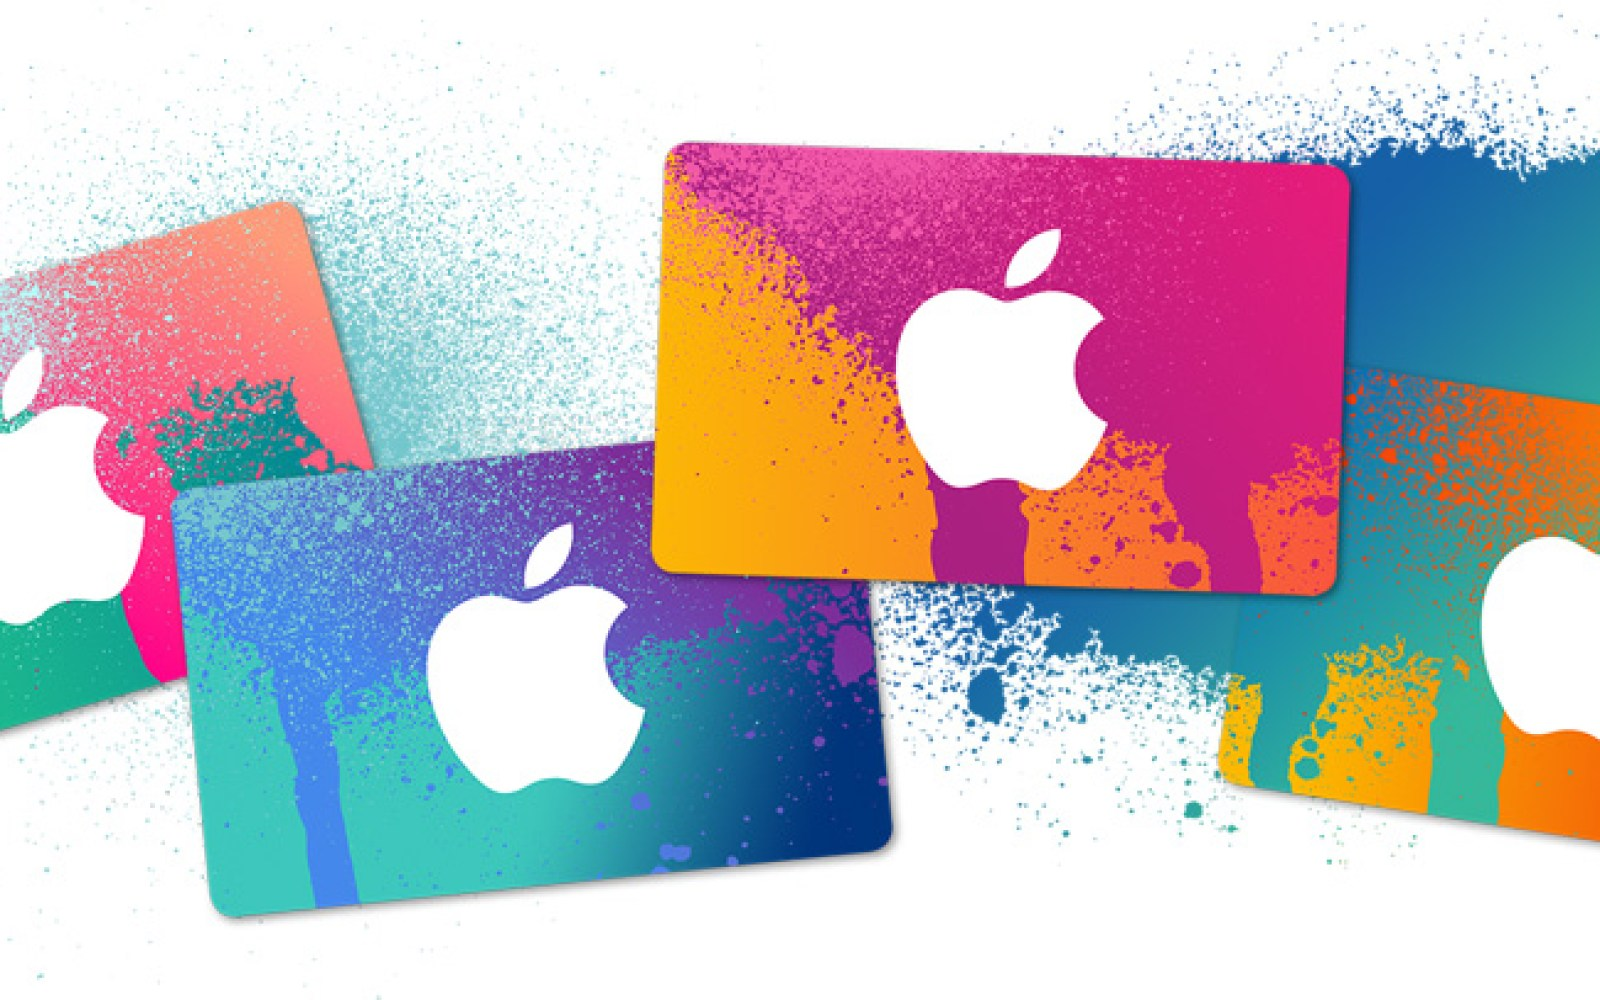 Apple iPad event spray paint spills over to this year's holiday gift cards